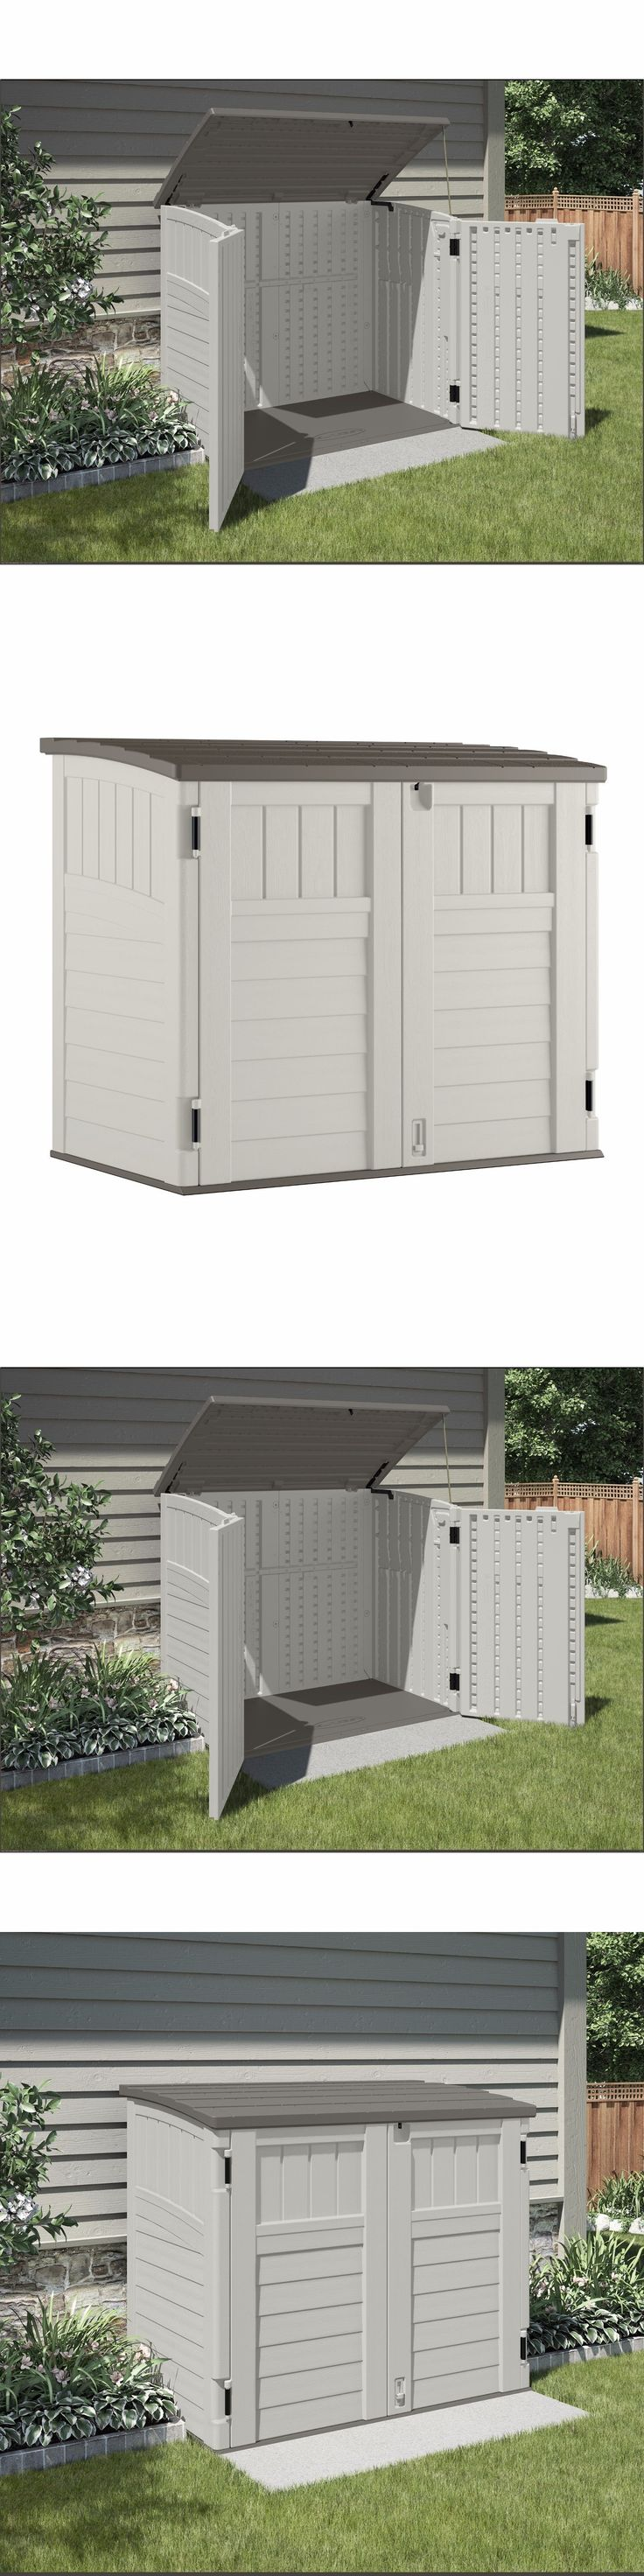 Garden and Storage Sheds 139956: Tool Shed Plastic Resin Backyard Storage Box Outdoor Cabinet Lawn Supplies Usa -> BUY IT NOW ONLY: $282.99 on eBay!